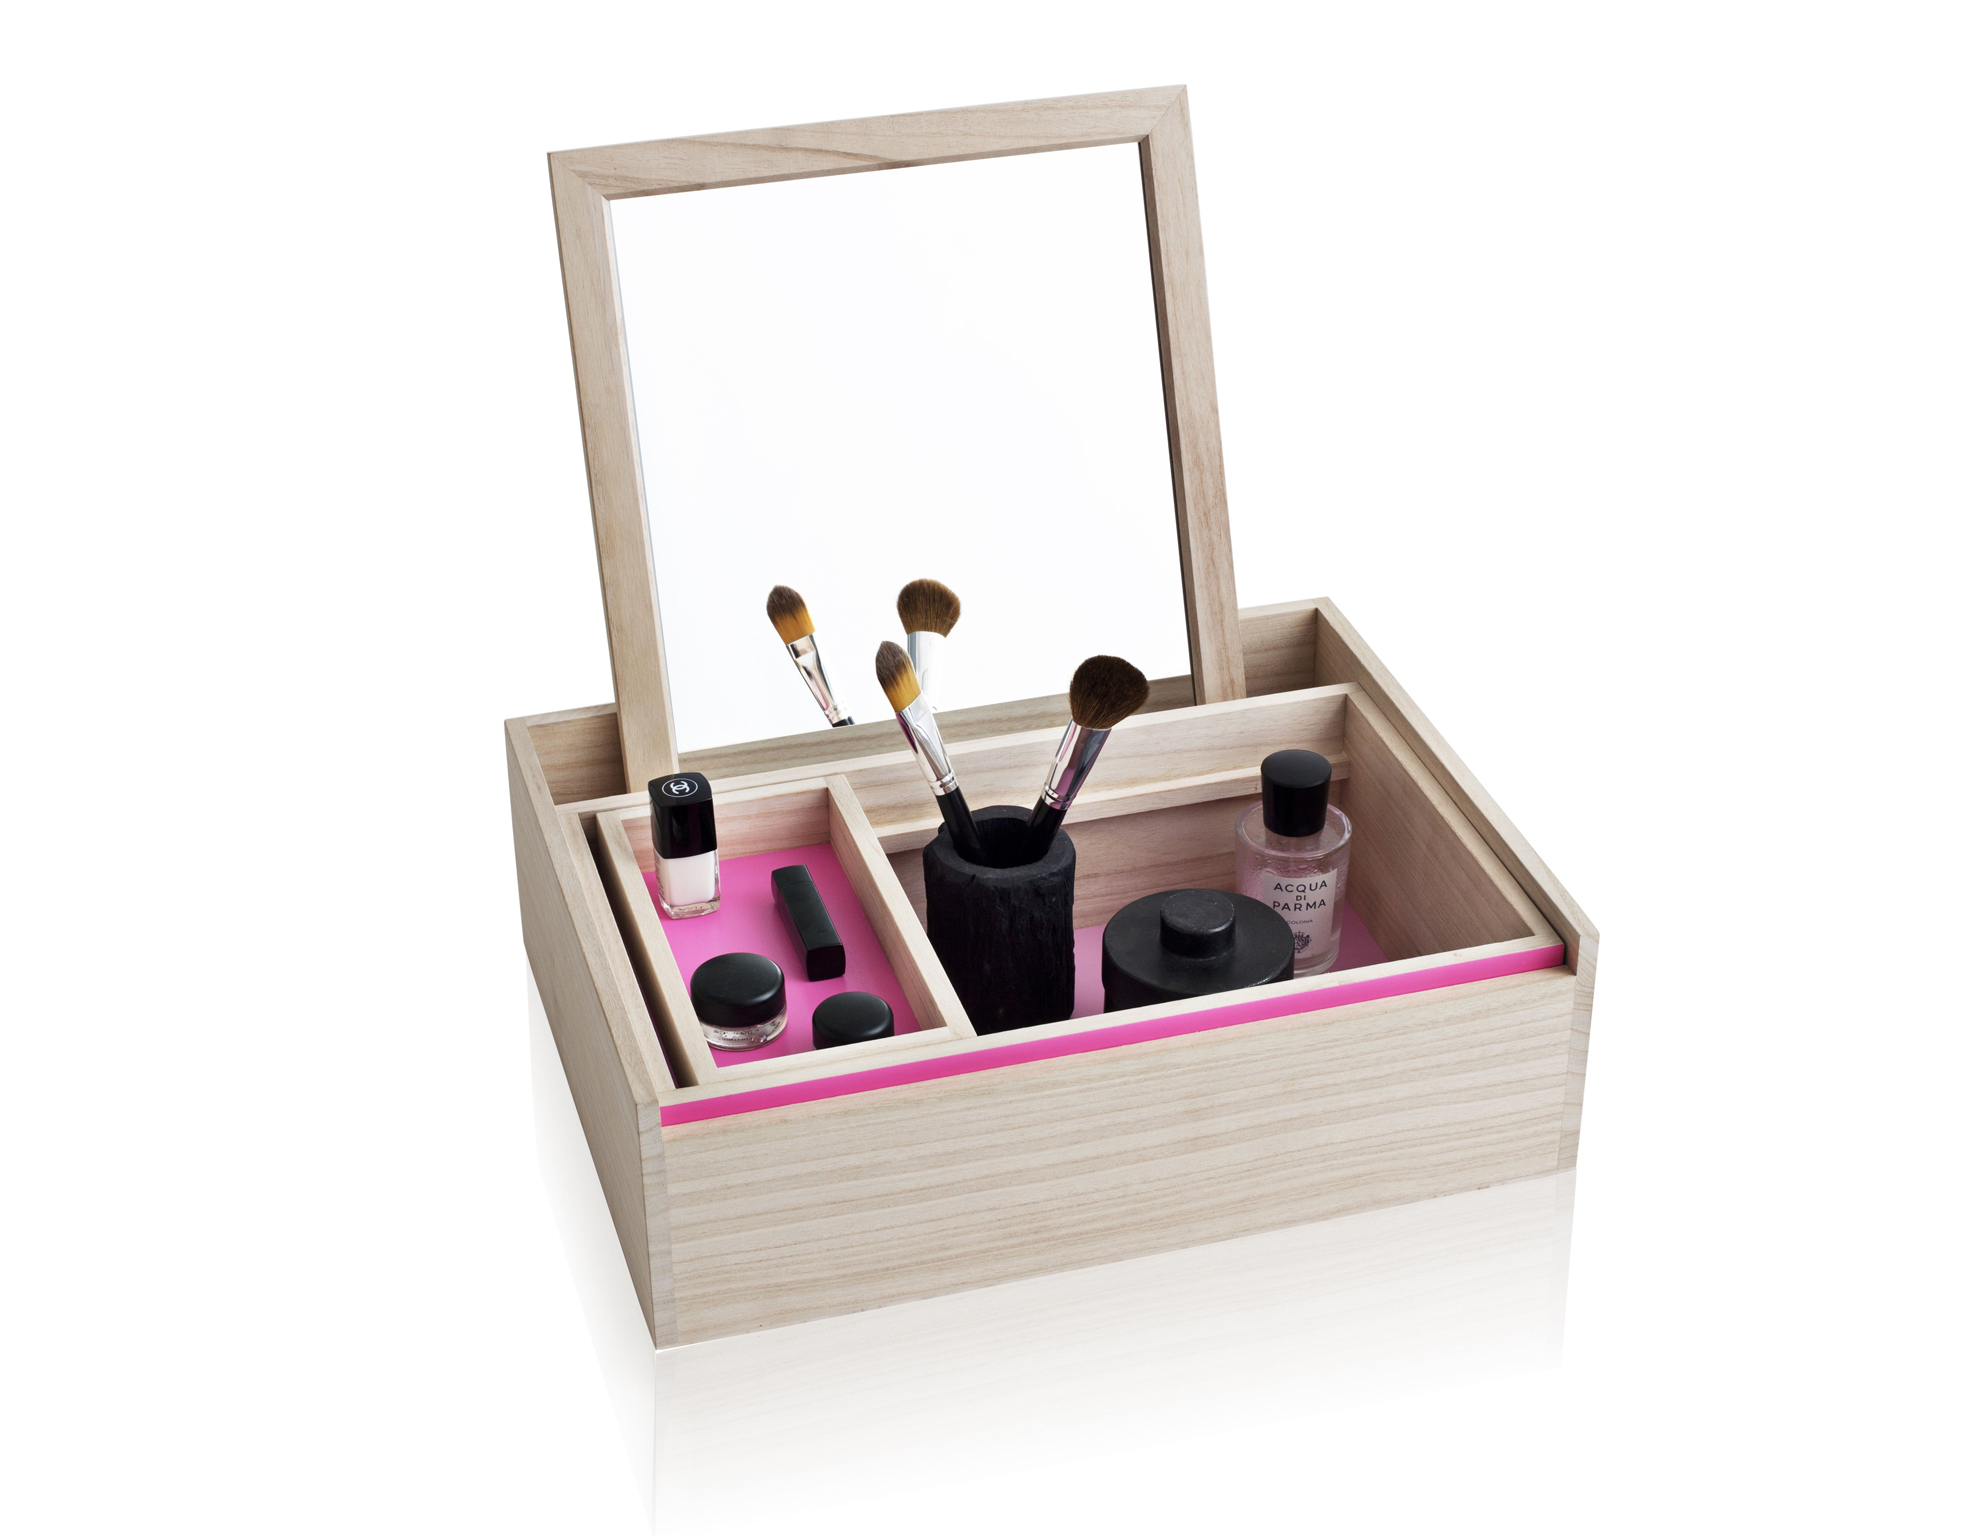 Nomess Balsabox Personal Storage Box – Large – Pink, £104, Amara